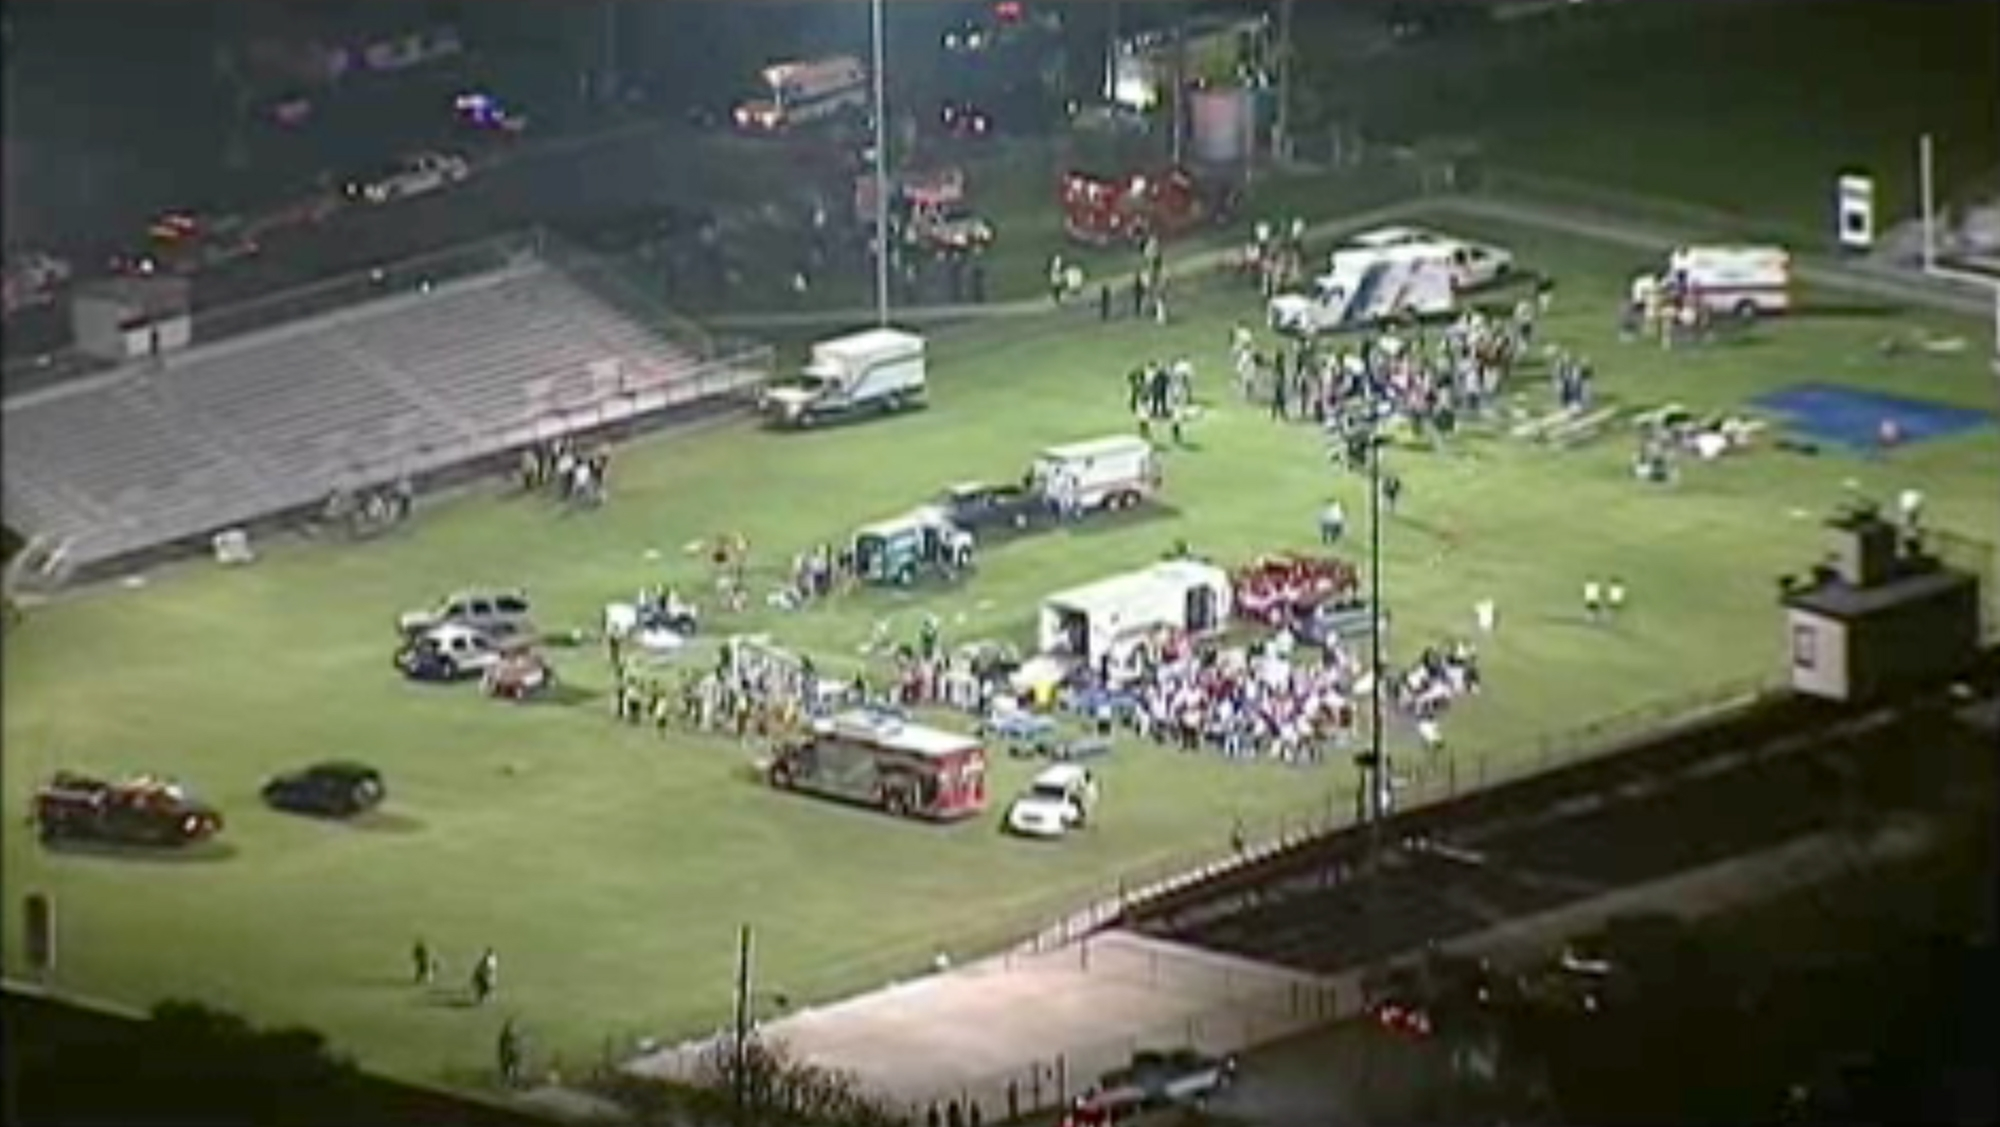 This video image shows injured people being treated on the high school football field turned into a staging area on Wednesday.